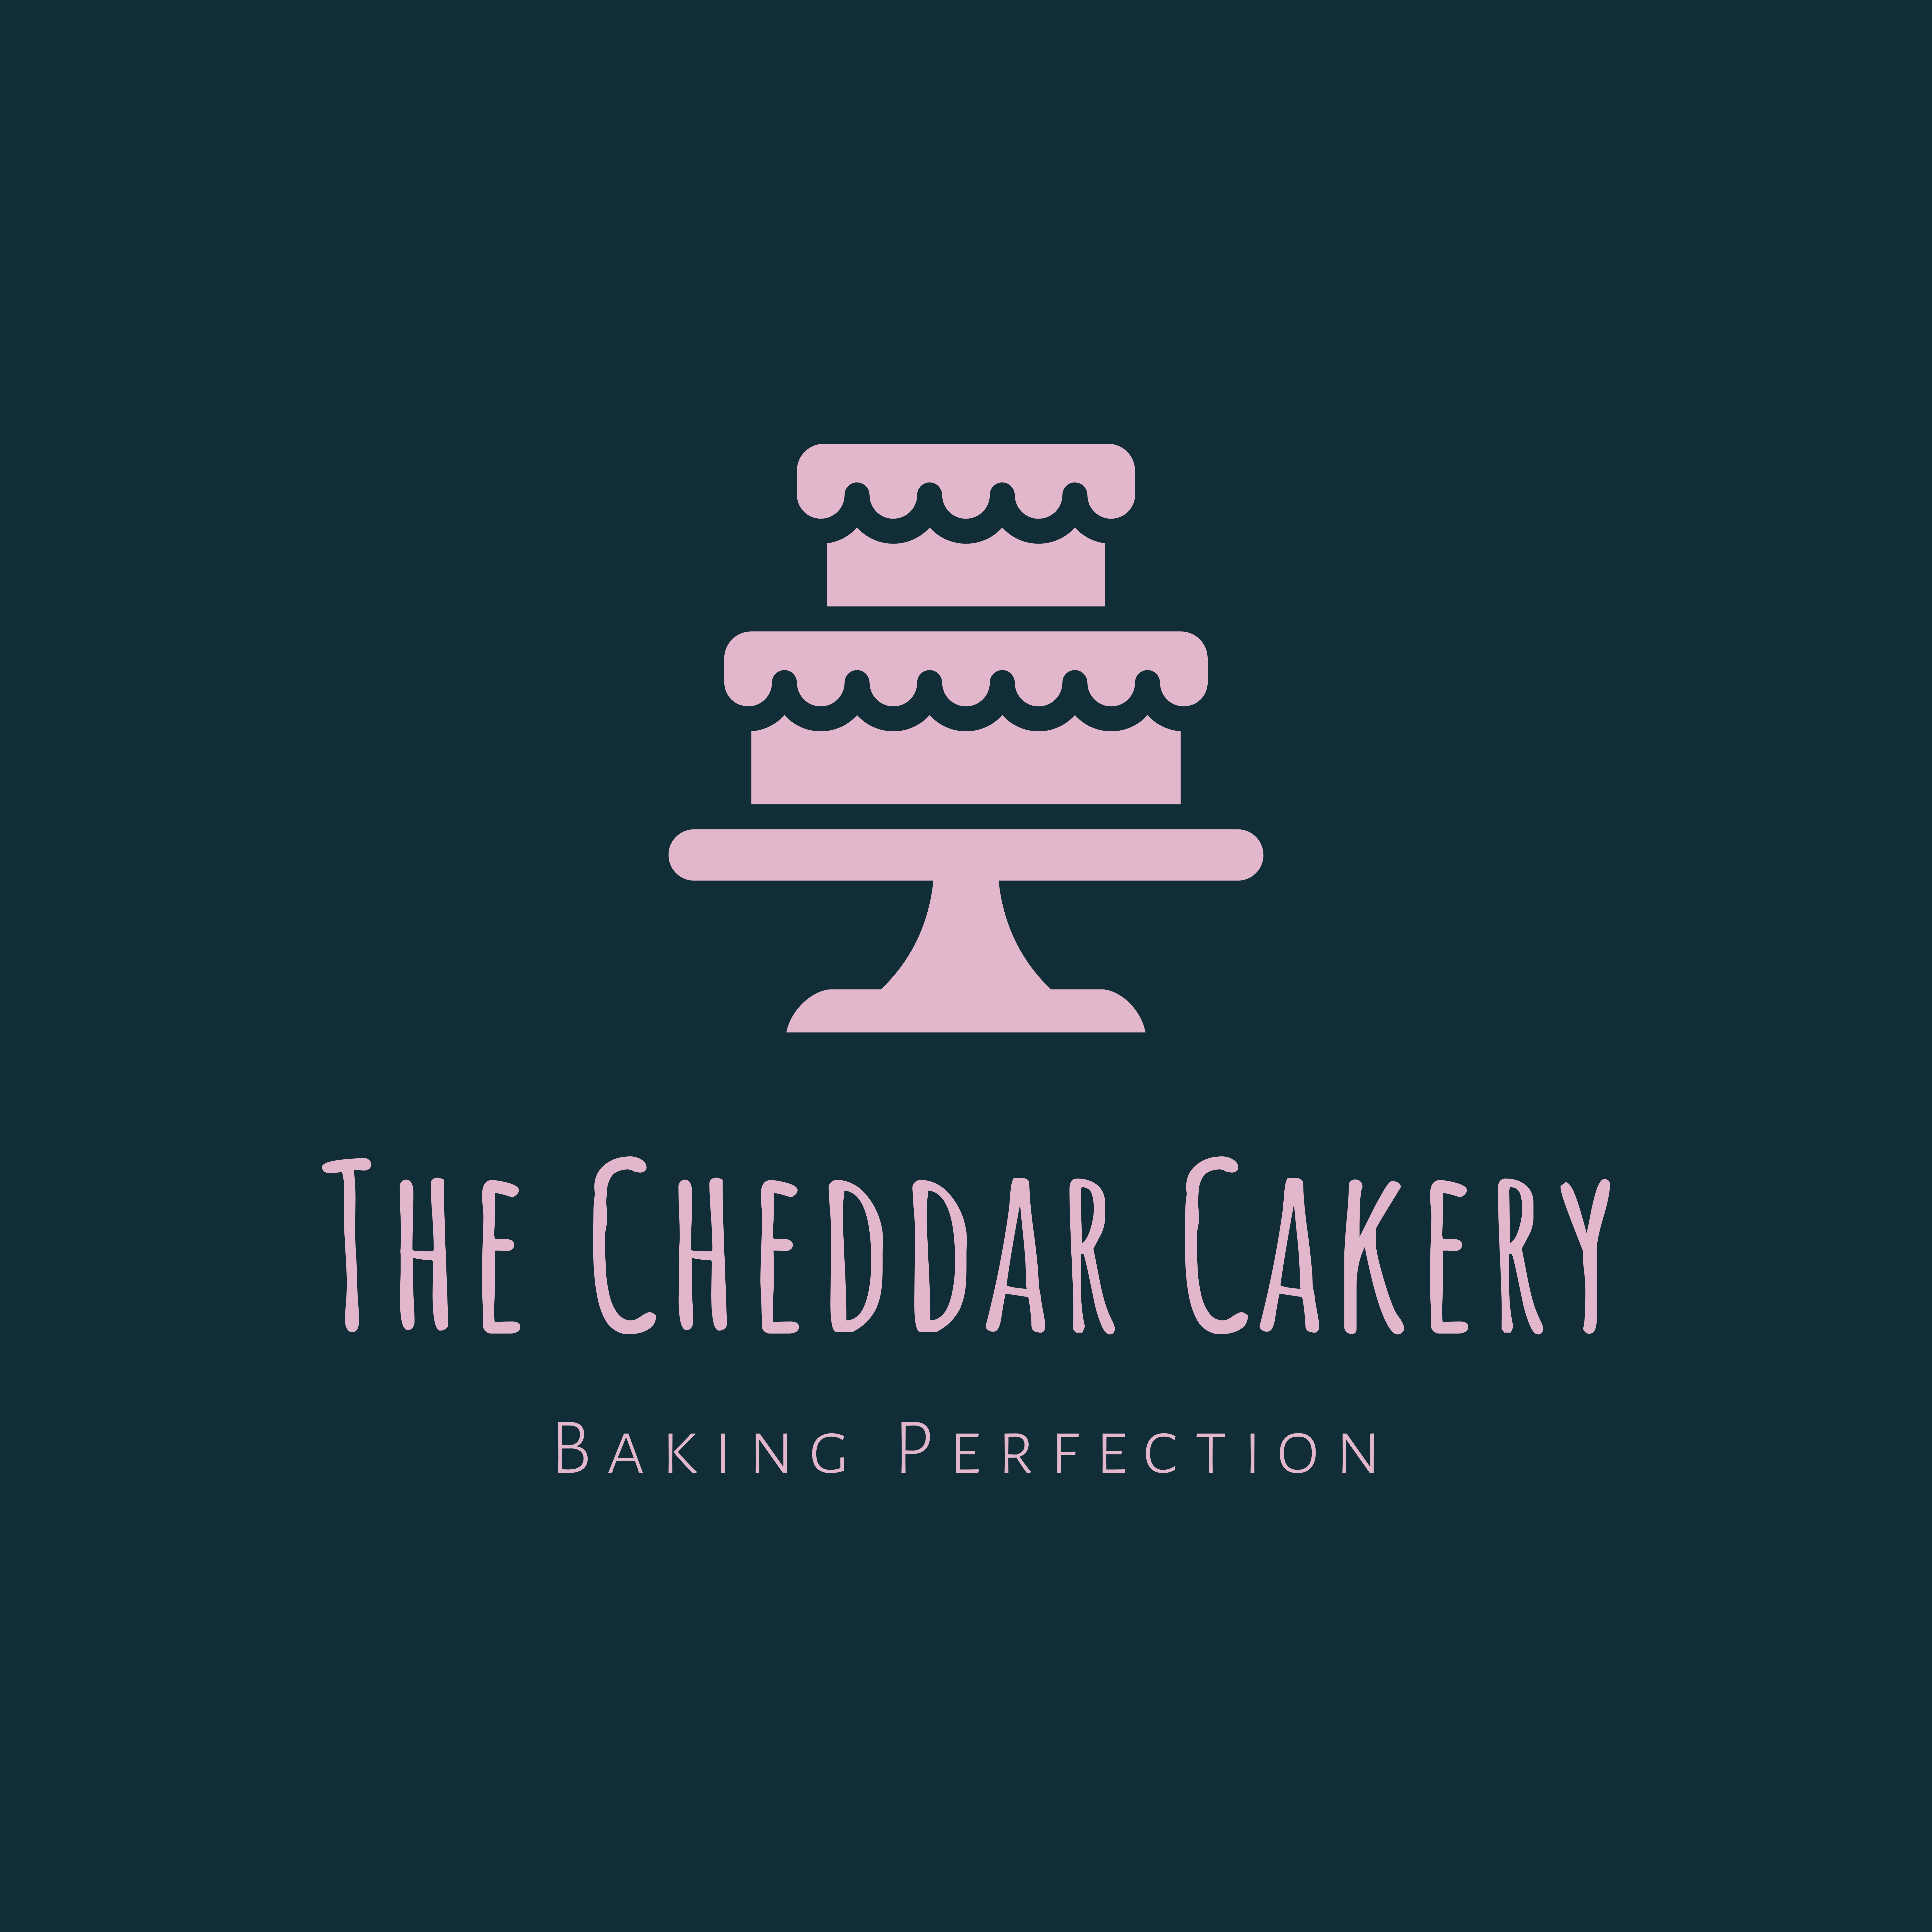 The Cheddar Cakery